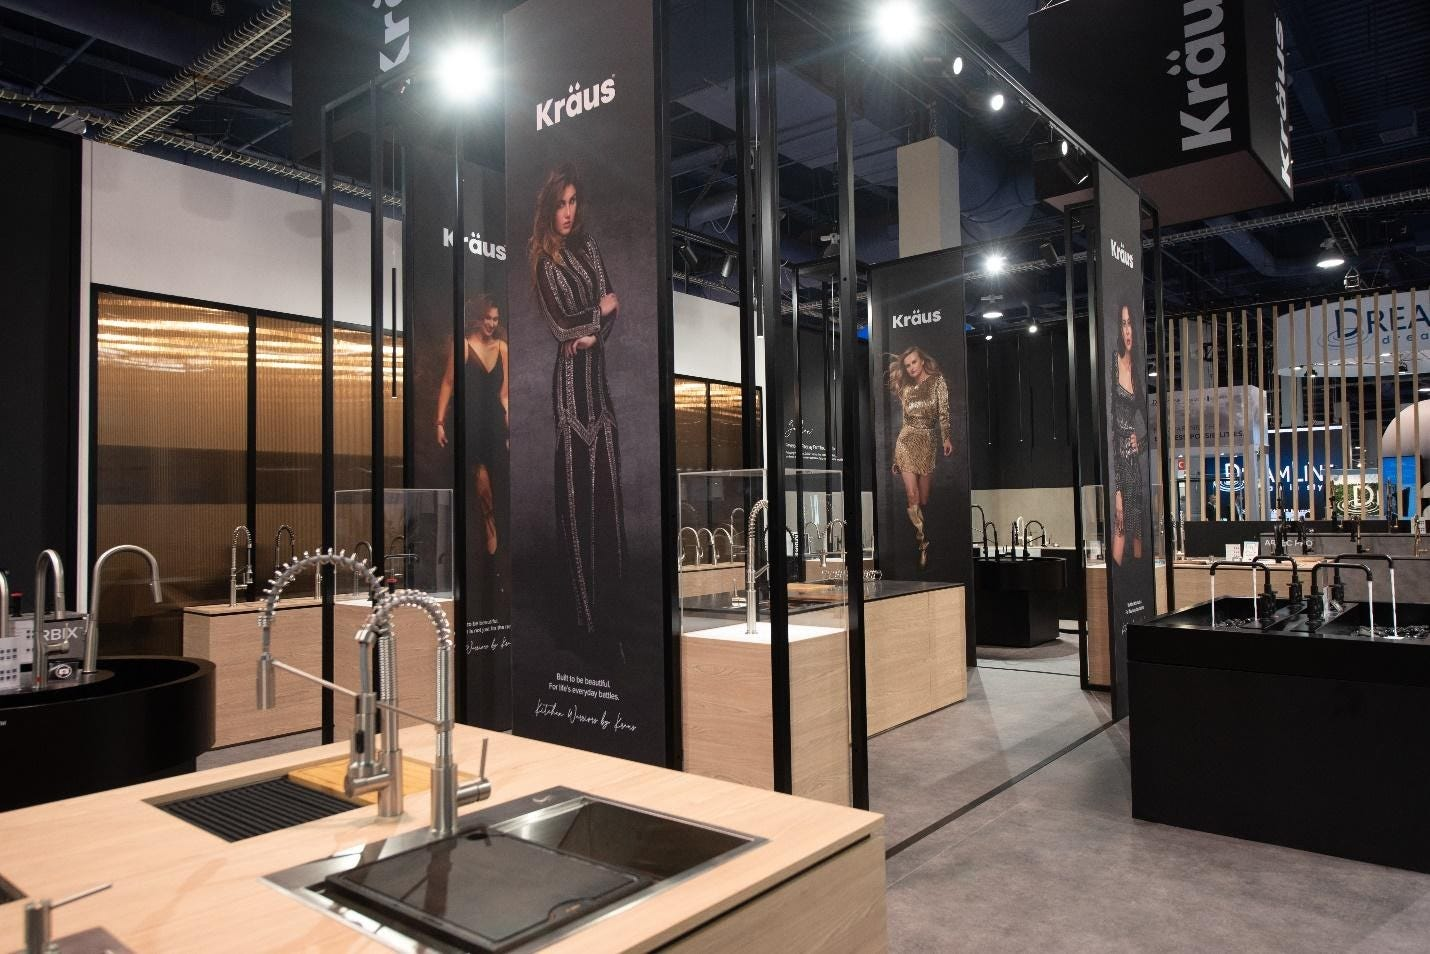 kraus-kbis-2020-faucets-in-booth